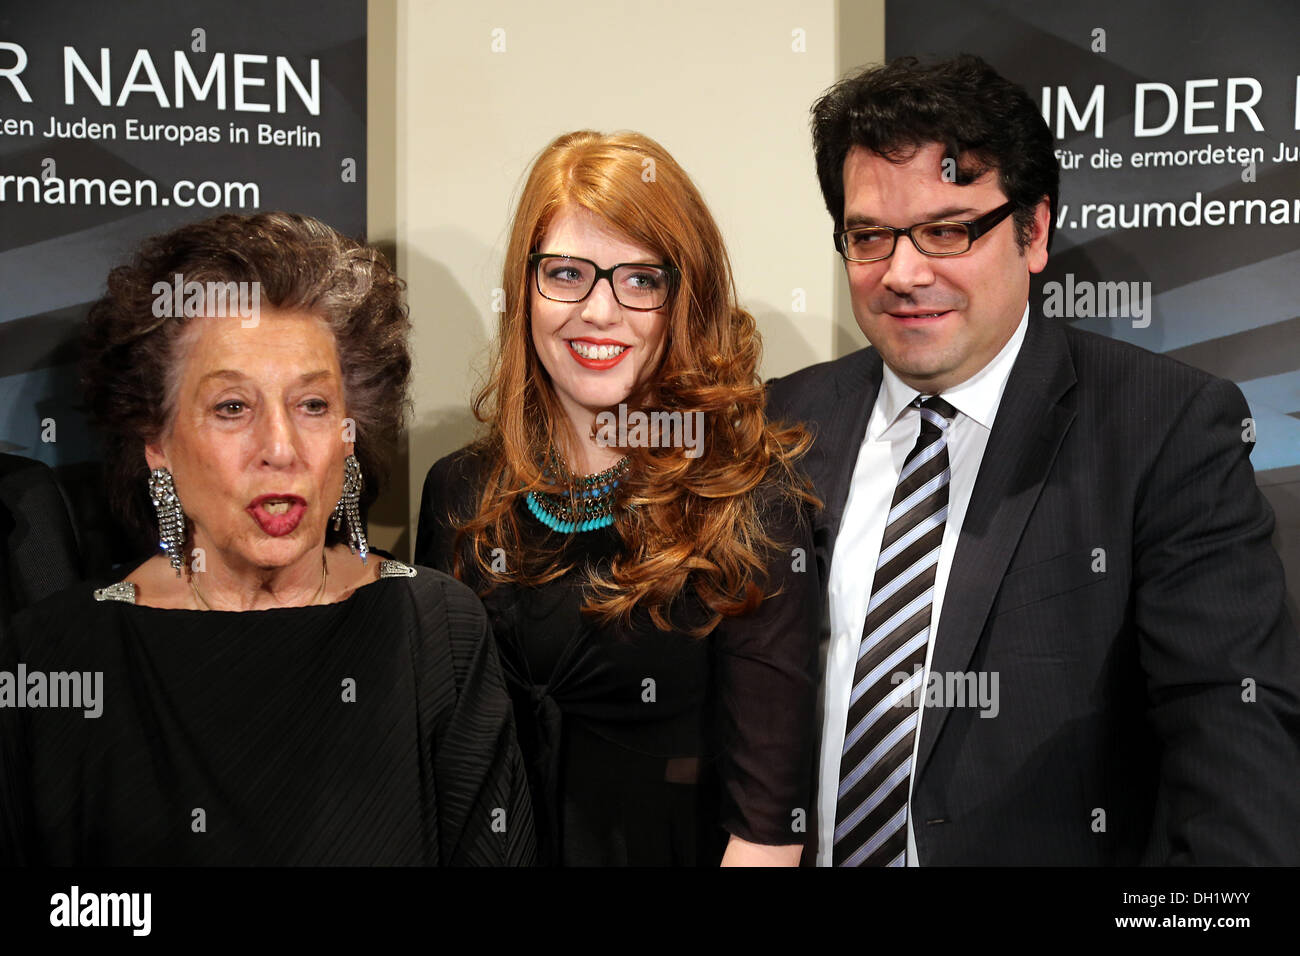 Berlin, Germany. 29th Oct, 2013. Author Lea Rosh (R-L), prize winner Luisa Seydel and chairman of the Jewish Community Gideon Joffe stand before the start of the ceremony for the Prize for Civil Courage against far-right extremism, anti-semitism and racism at the citizen's initiative 'Hellersdorf hilft' (Hellersdorf Helps) in Berlin, Germany, 29 October 2013. Photo: WOLFGANG KUMM/dpa/Alamy Live News - Stock Image